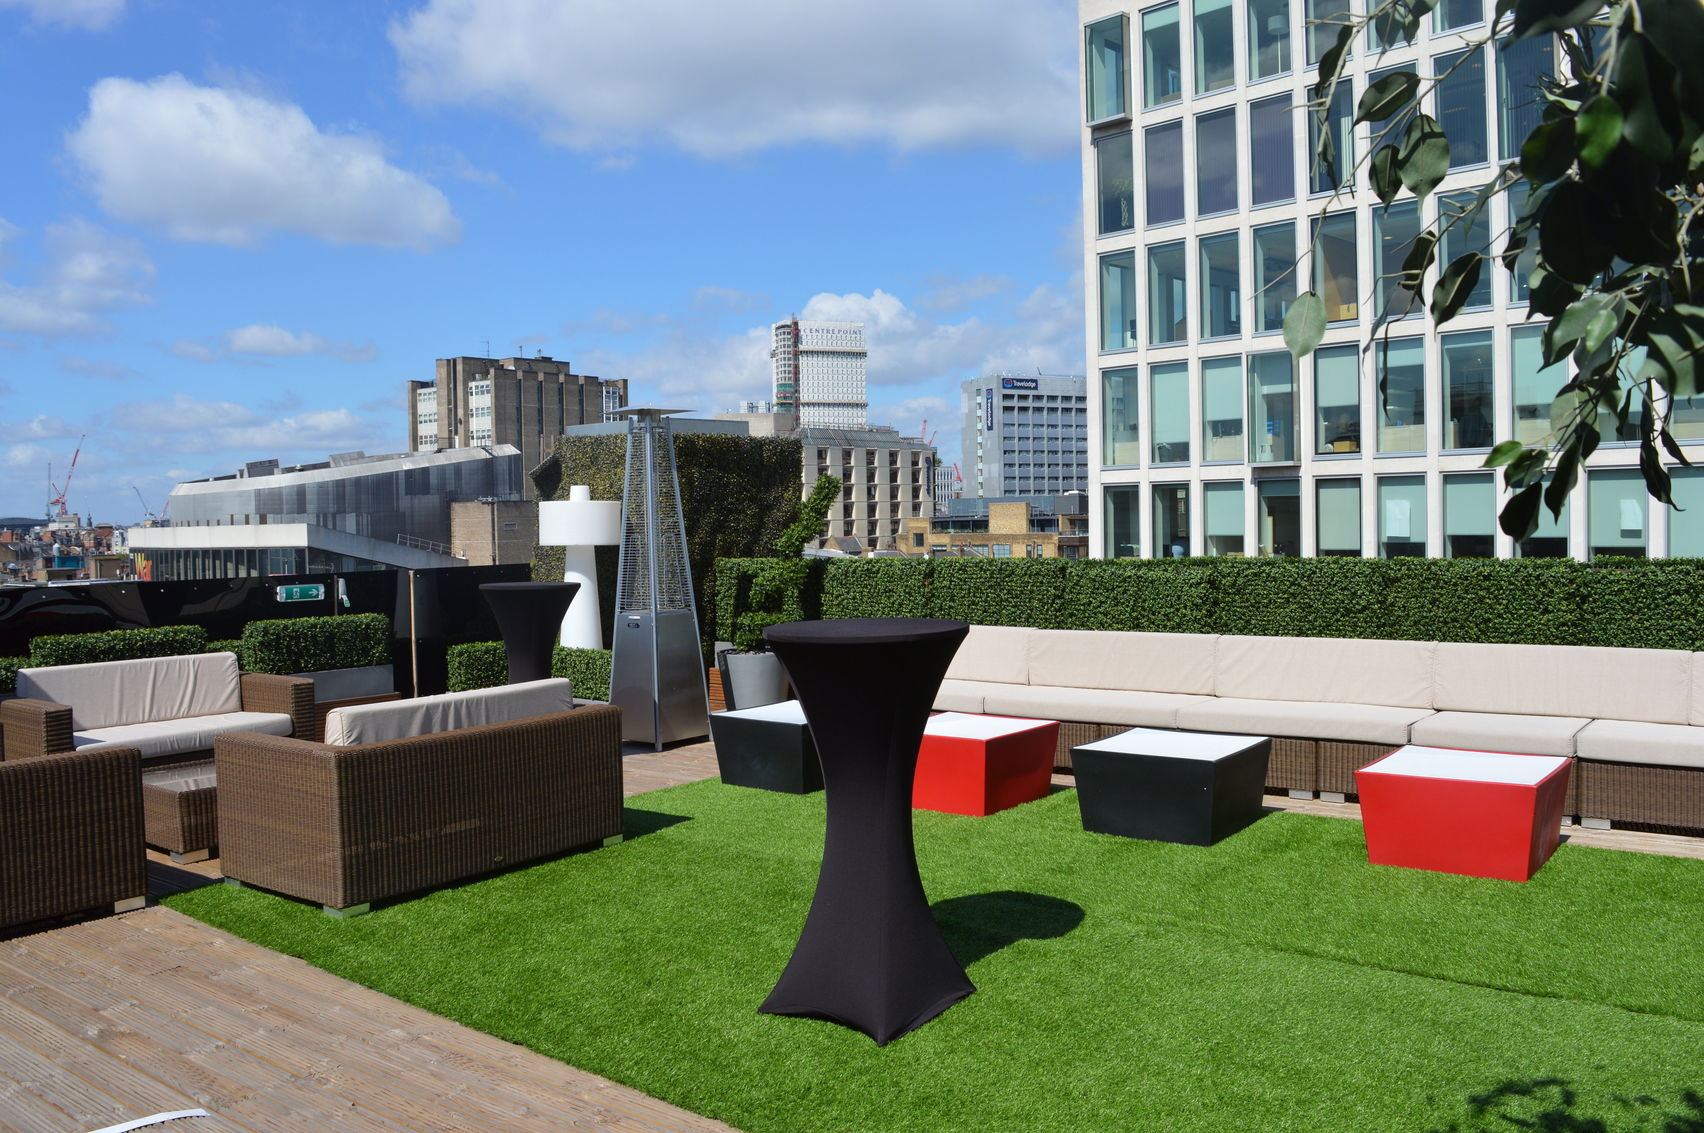 A rooftop terrace with fake grass and black and red seats